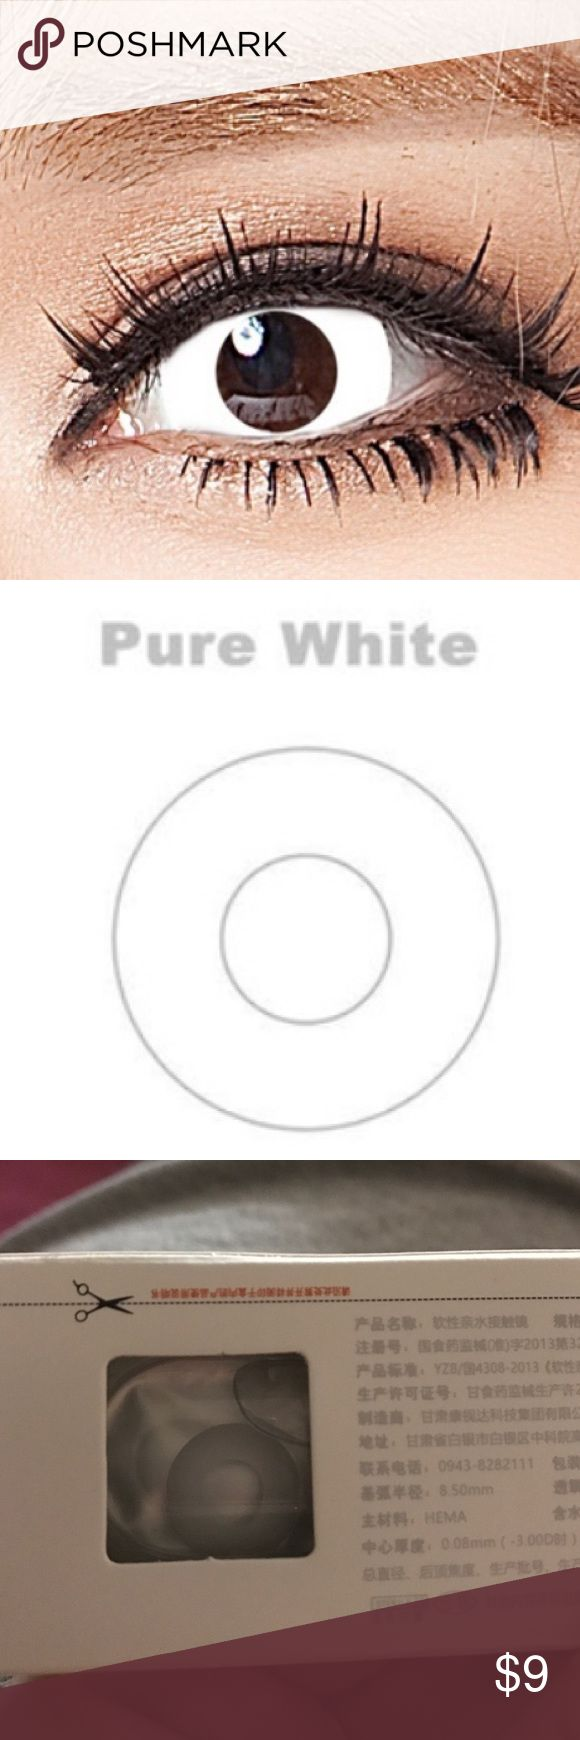 Pure White Contacts Beauty Blooming Soon Halloween contact lenses for cosplay  The Color White color / Red color/Black color Base curve:8.6mm Diameter:14.2mm Phemfilcon: 40% 1.All lenses was yearly use. 2.All lenses only for eye color , Without diopter  Package included: 1 pair contact lenses 1 piece contact lenses case Makeup